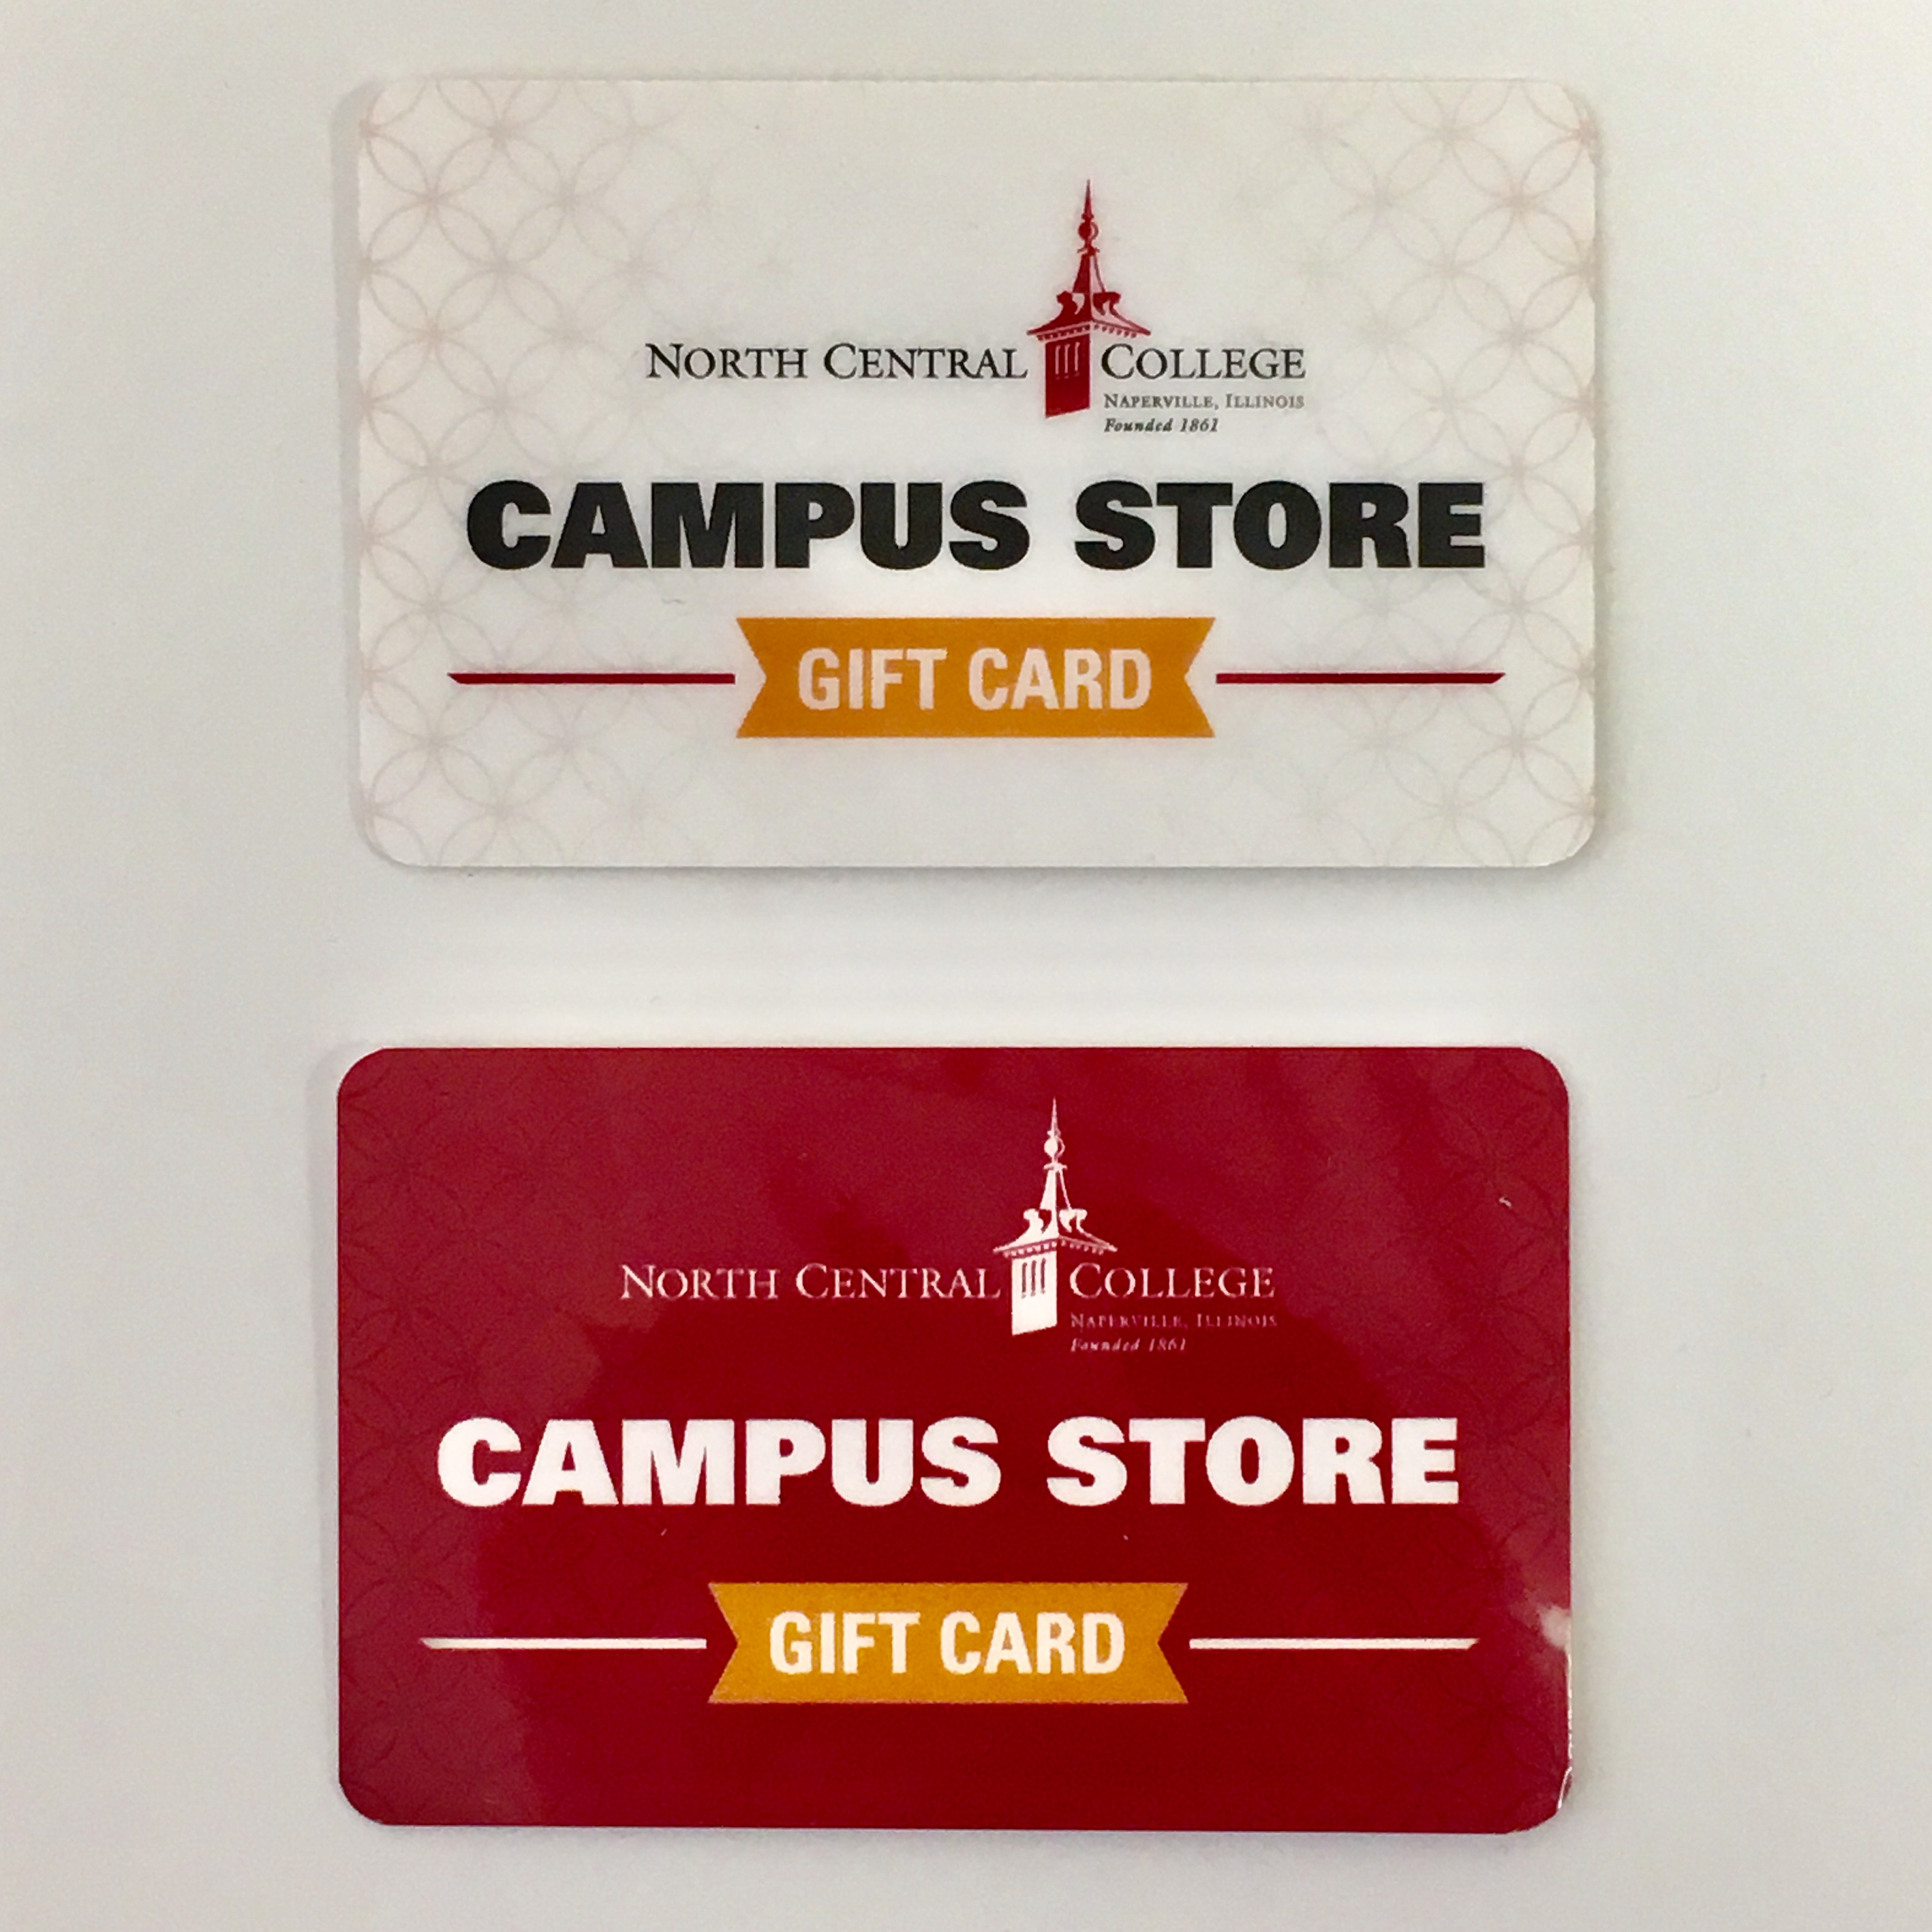 Image for the Campus Store Gift Card product